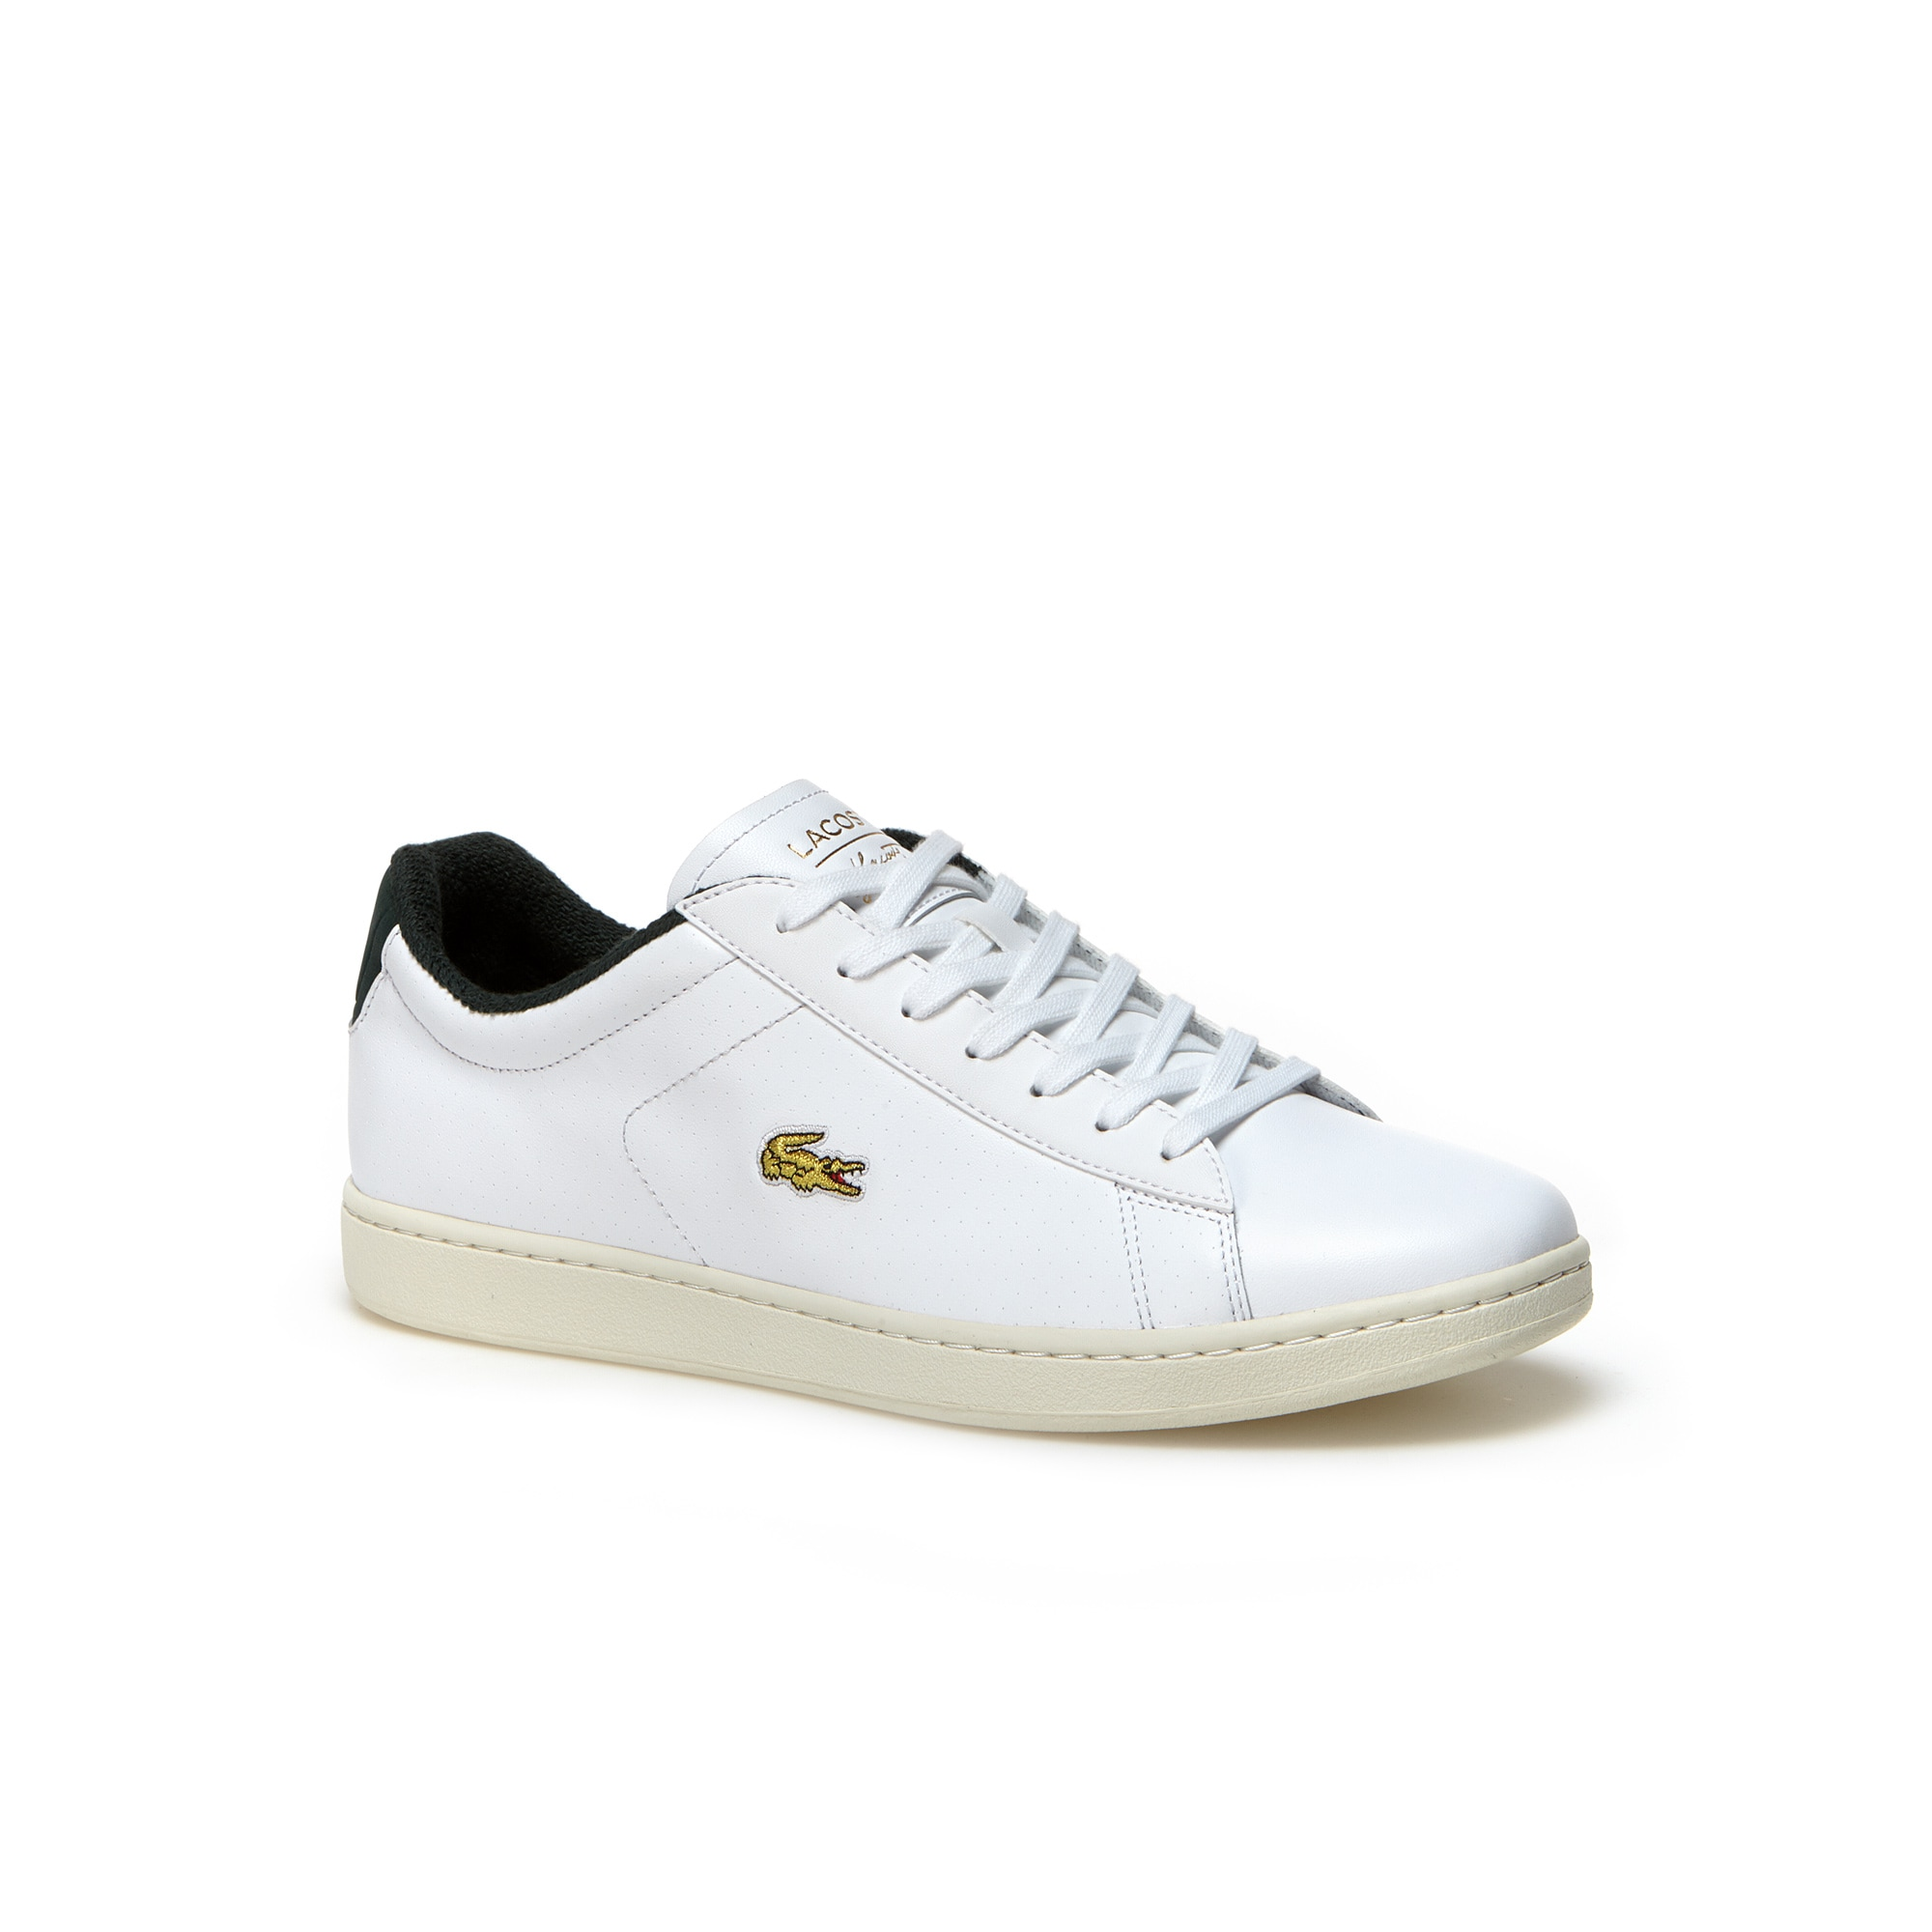 Sneakers Carnaby Evo in pelle